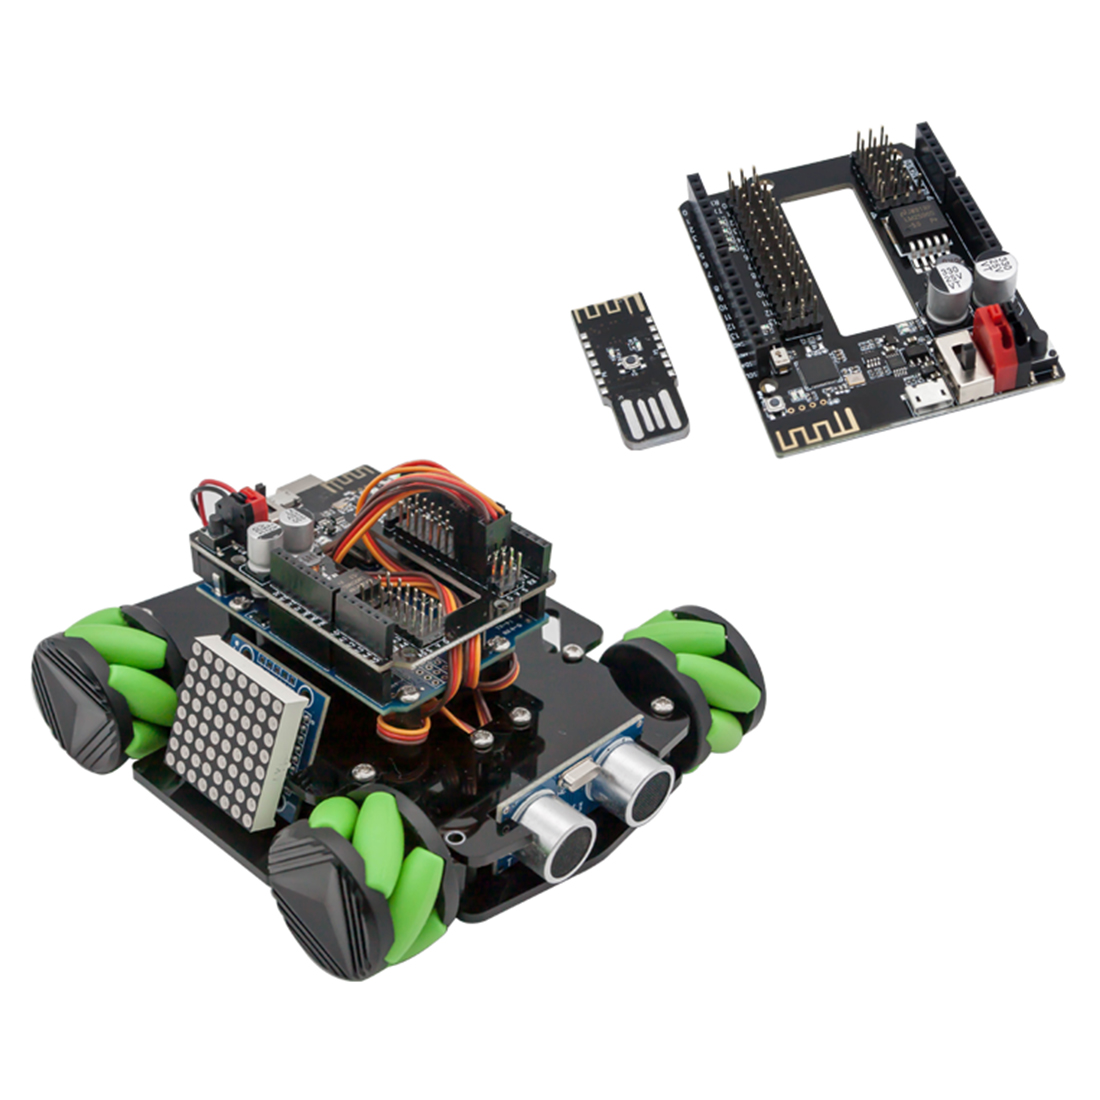 Hot DIY Obstacle Avoidance Smart Programmable Robot Car Educational Toy Learning Kit With Mecanum Wheels For Arduino UNO - Set D